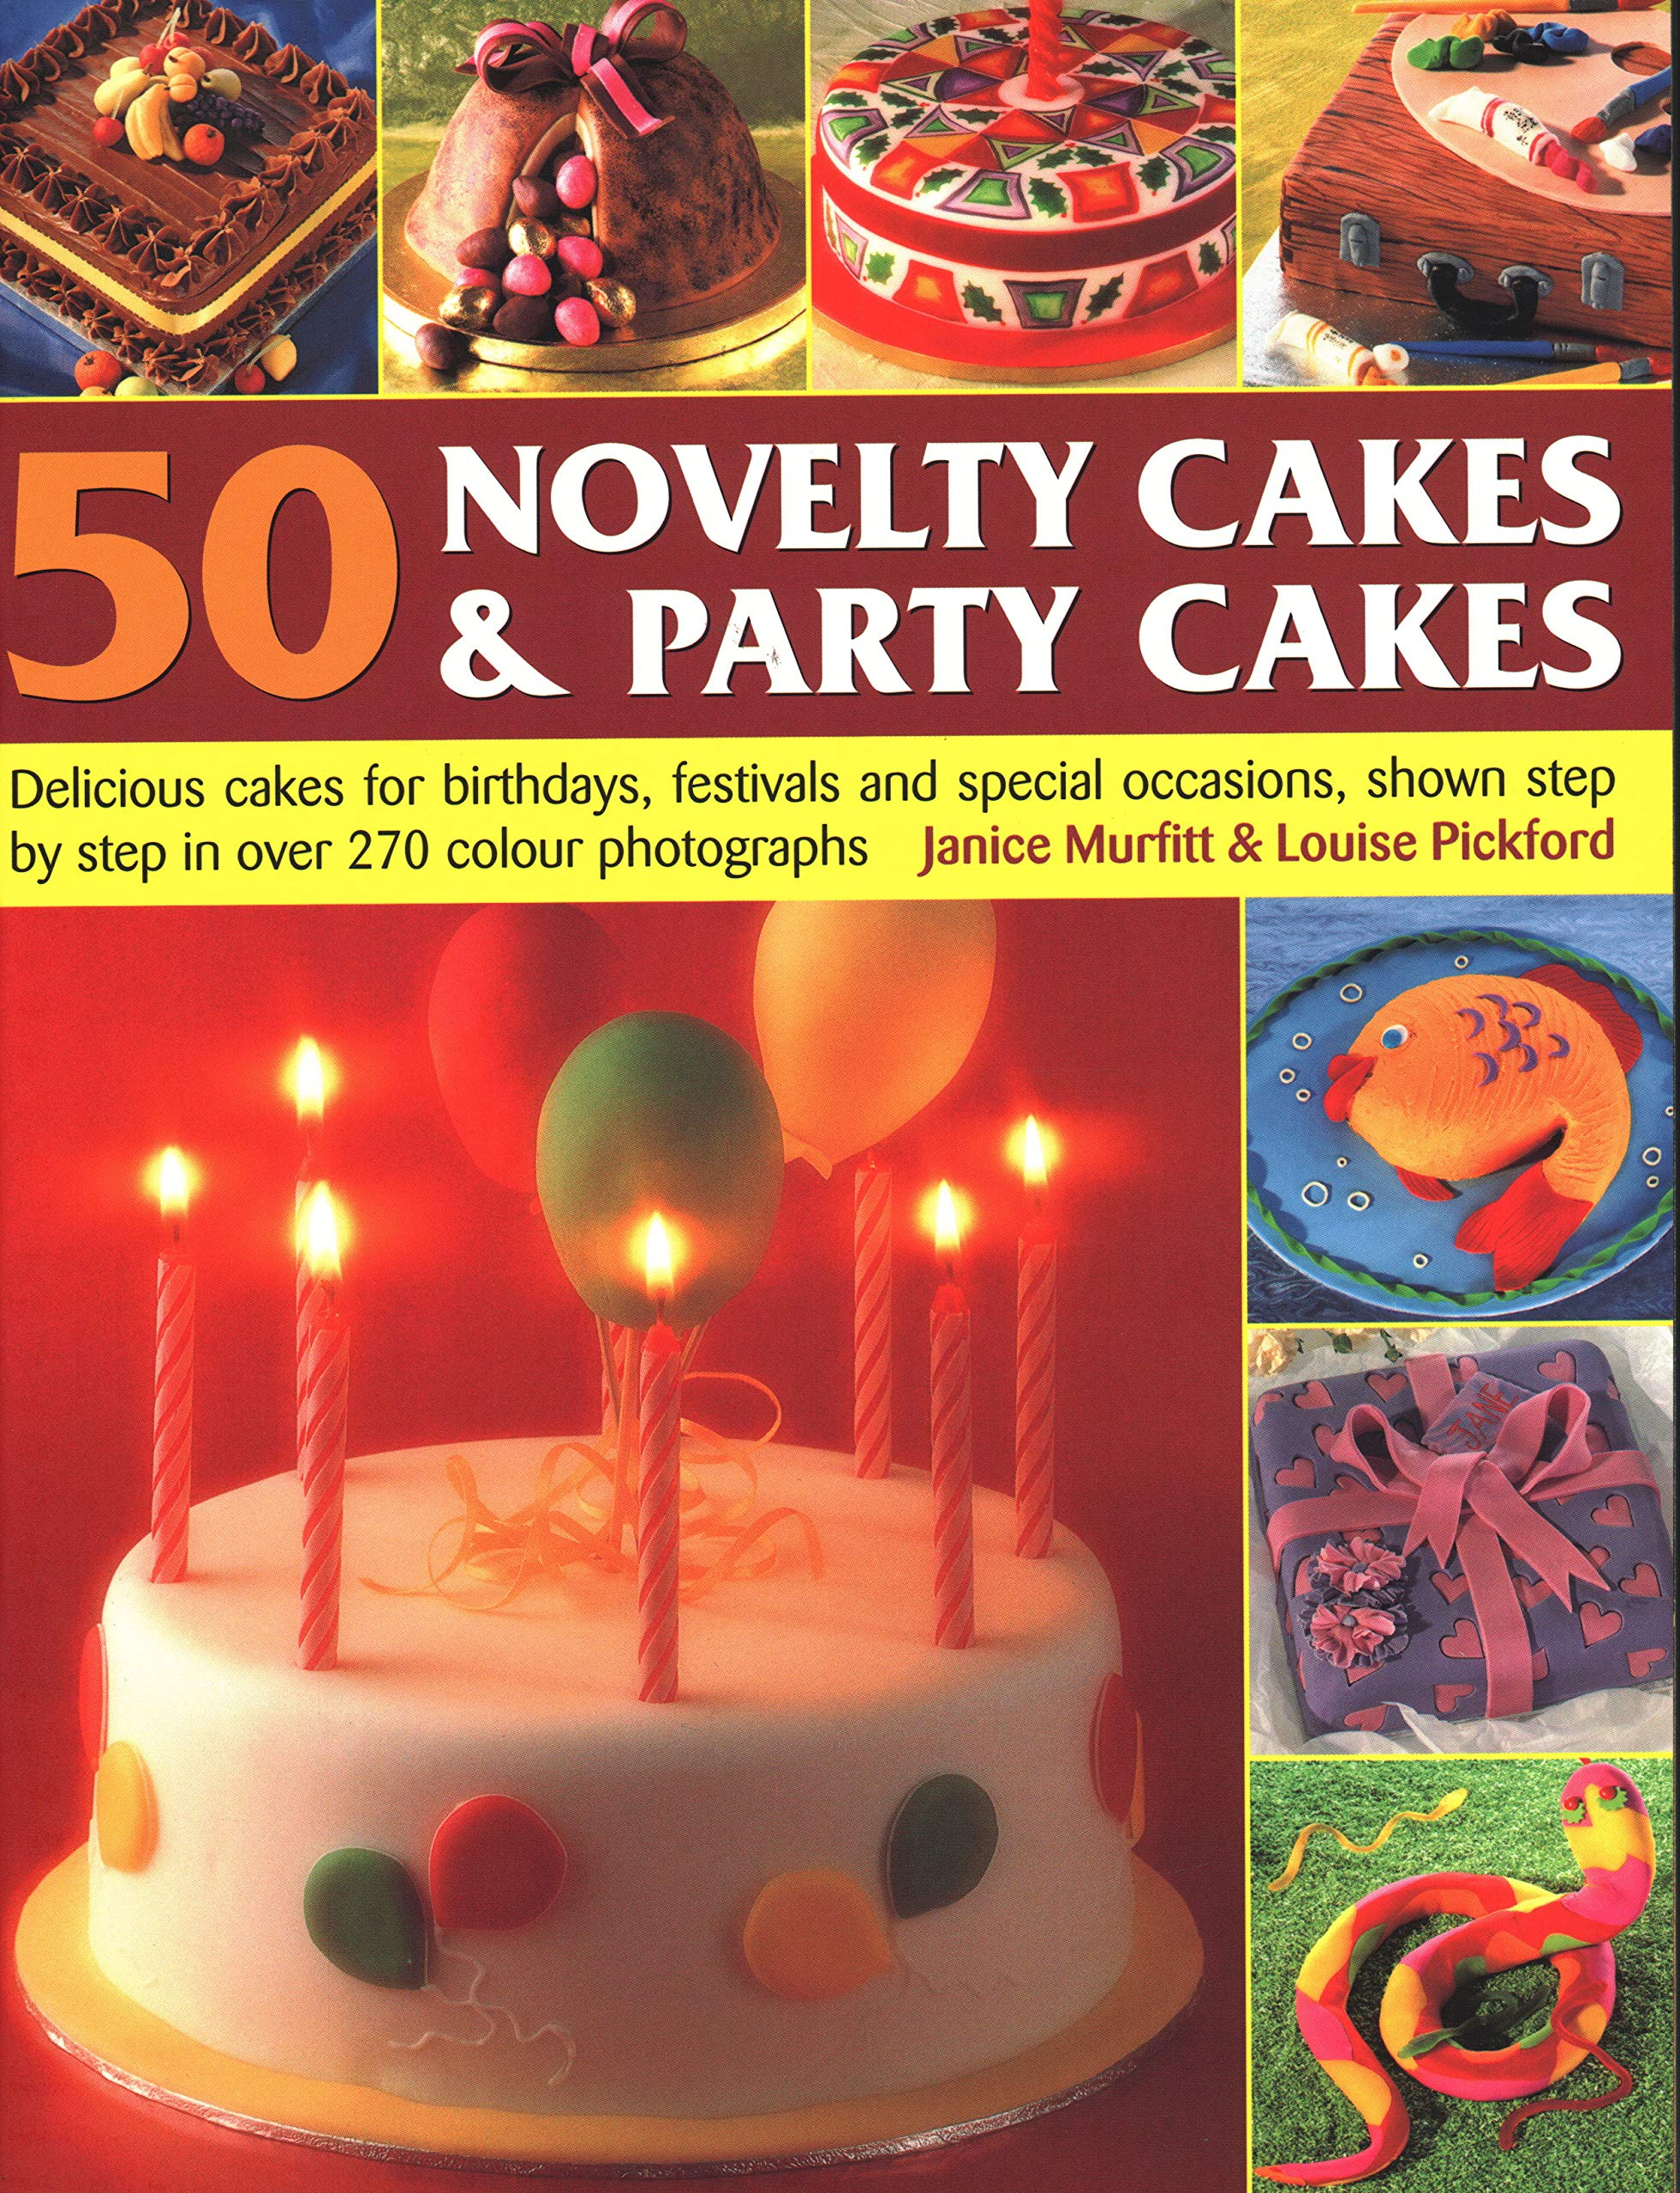 50 Novelty Cakes Party Cakes Delicious Cakes For Birthdays